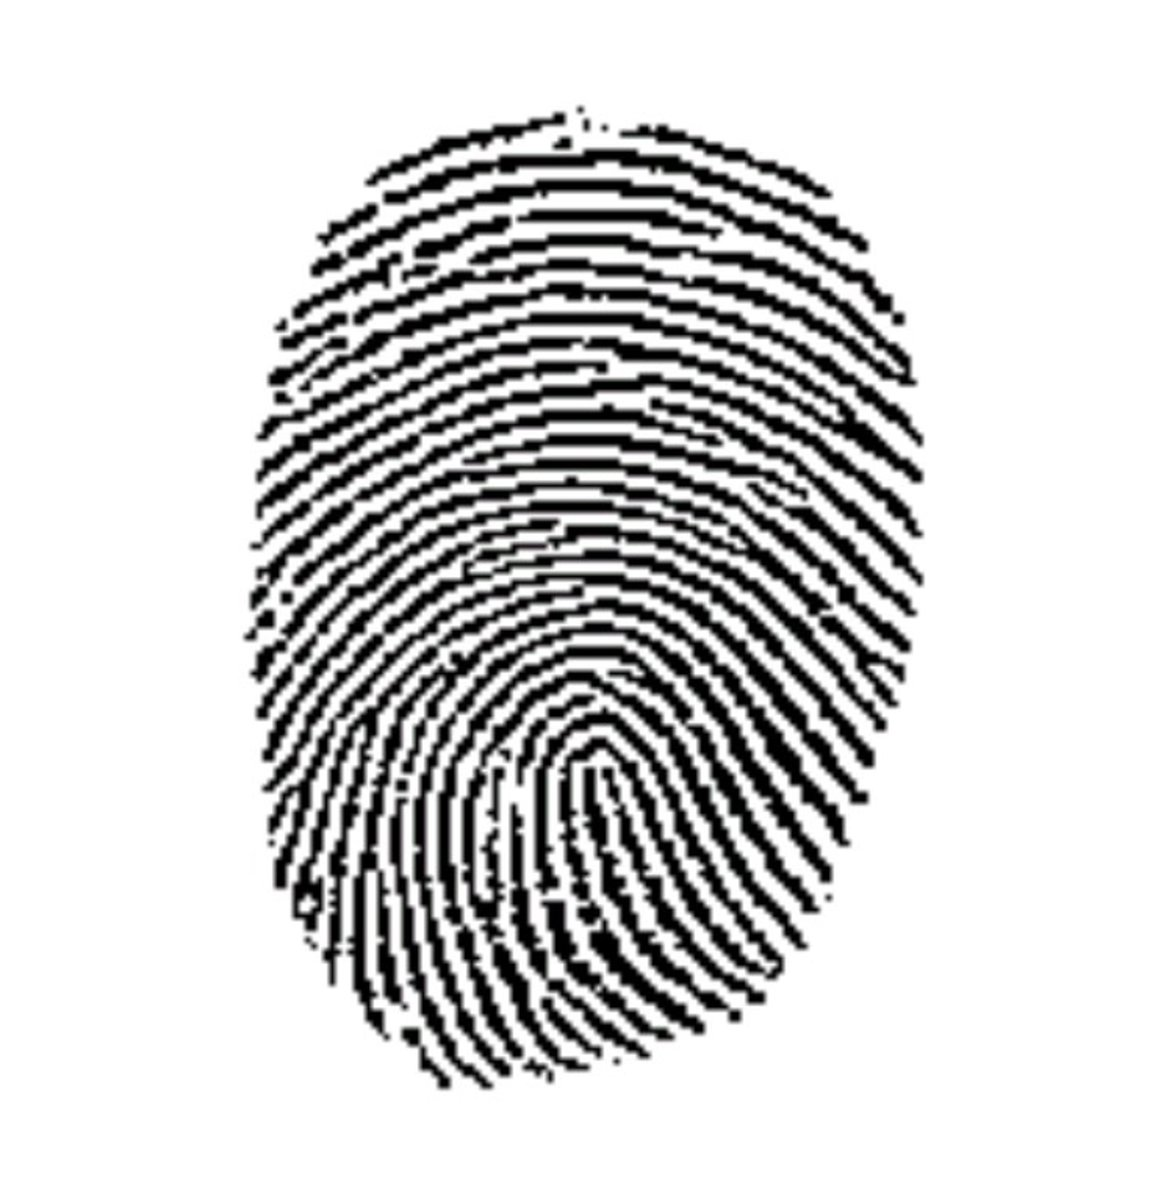 What Your Fingerprints Say About You: The Link Between Fingerprints and Personality